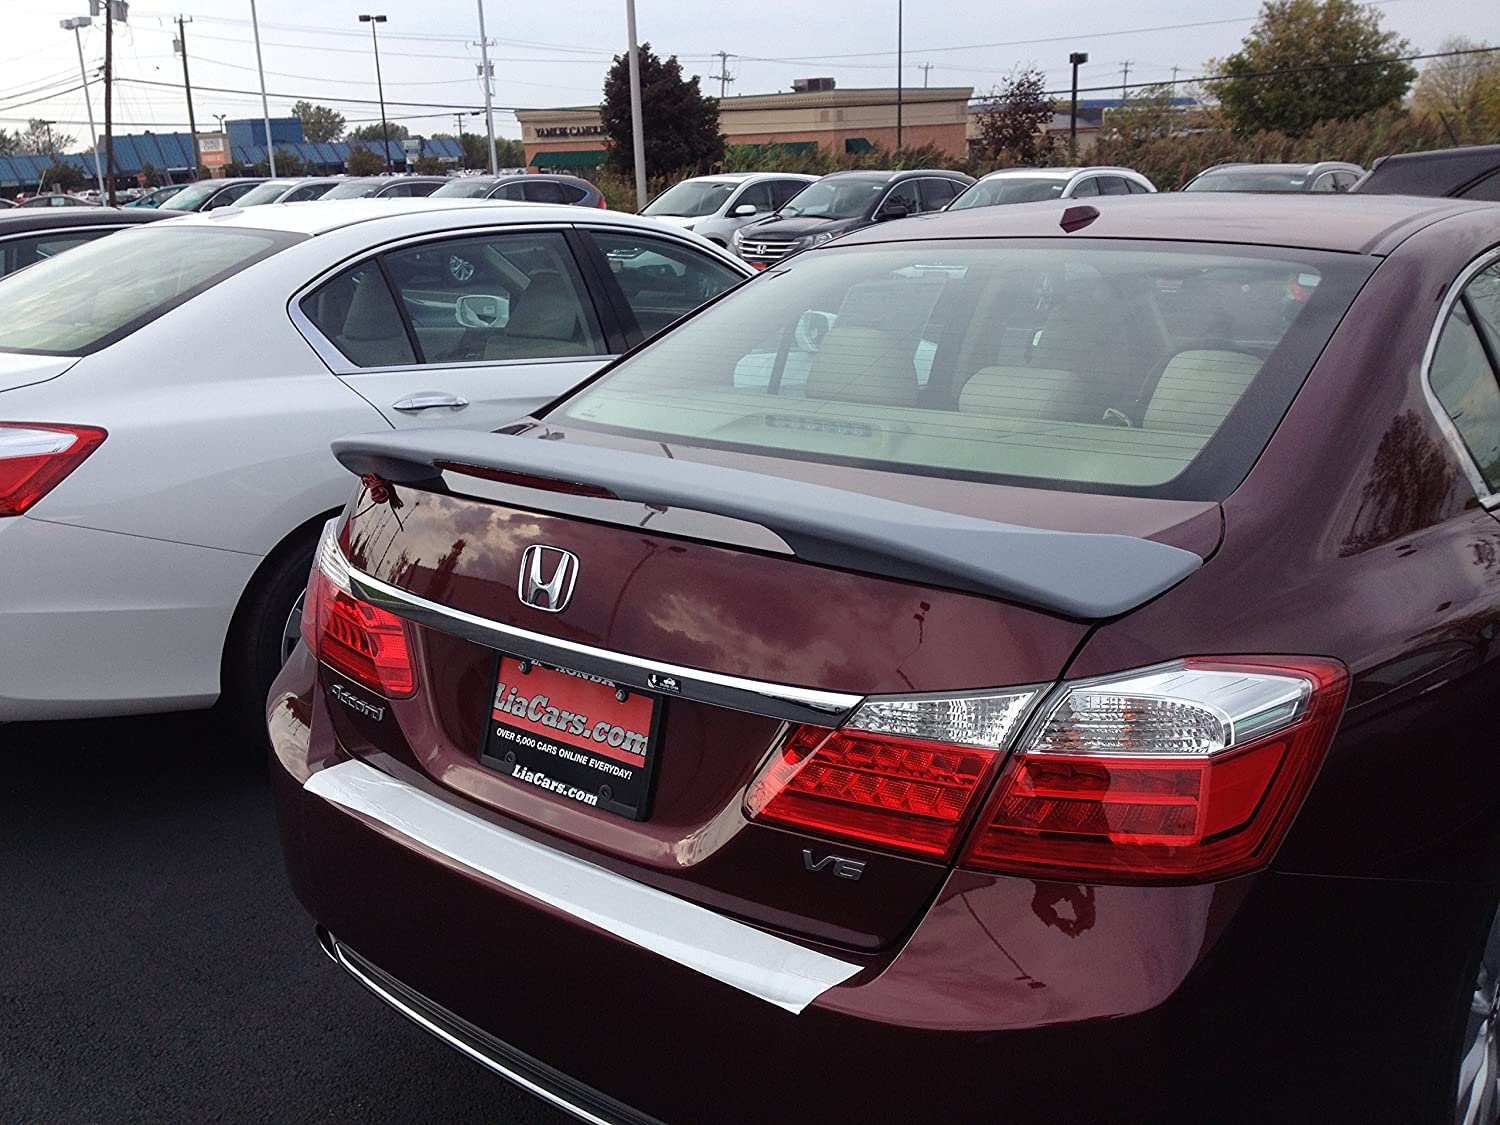 Jsp 368066 Honda Accord 4dr Rear Spoiler Painted 2013 1992 Civic 2016 Factory Style With Led New Hematite Gray Metallic Automotive